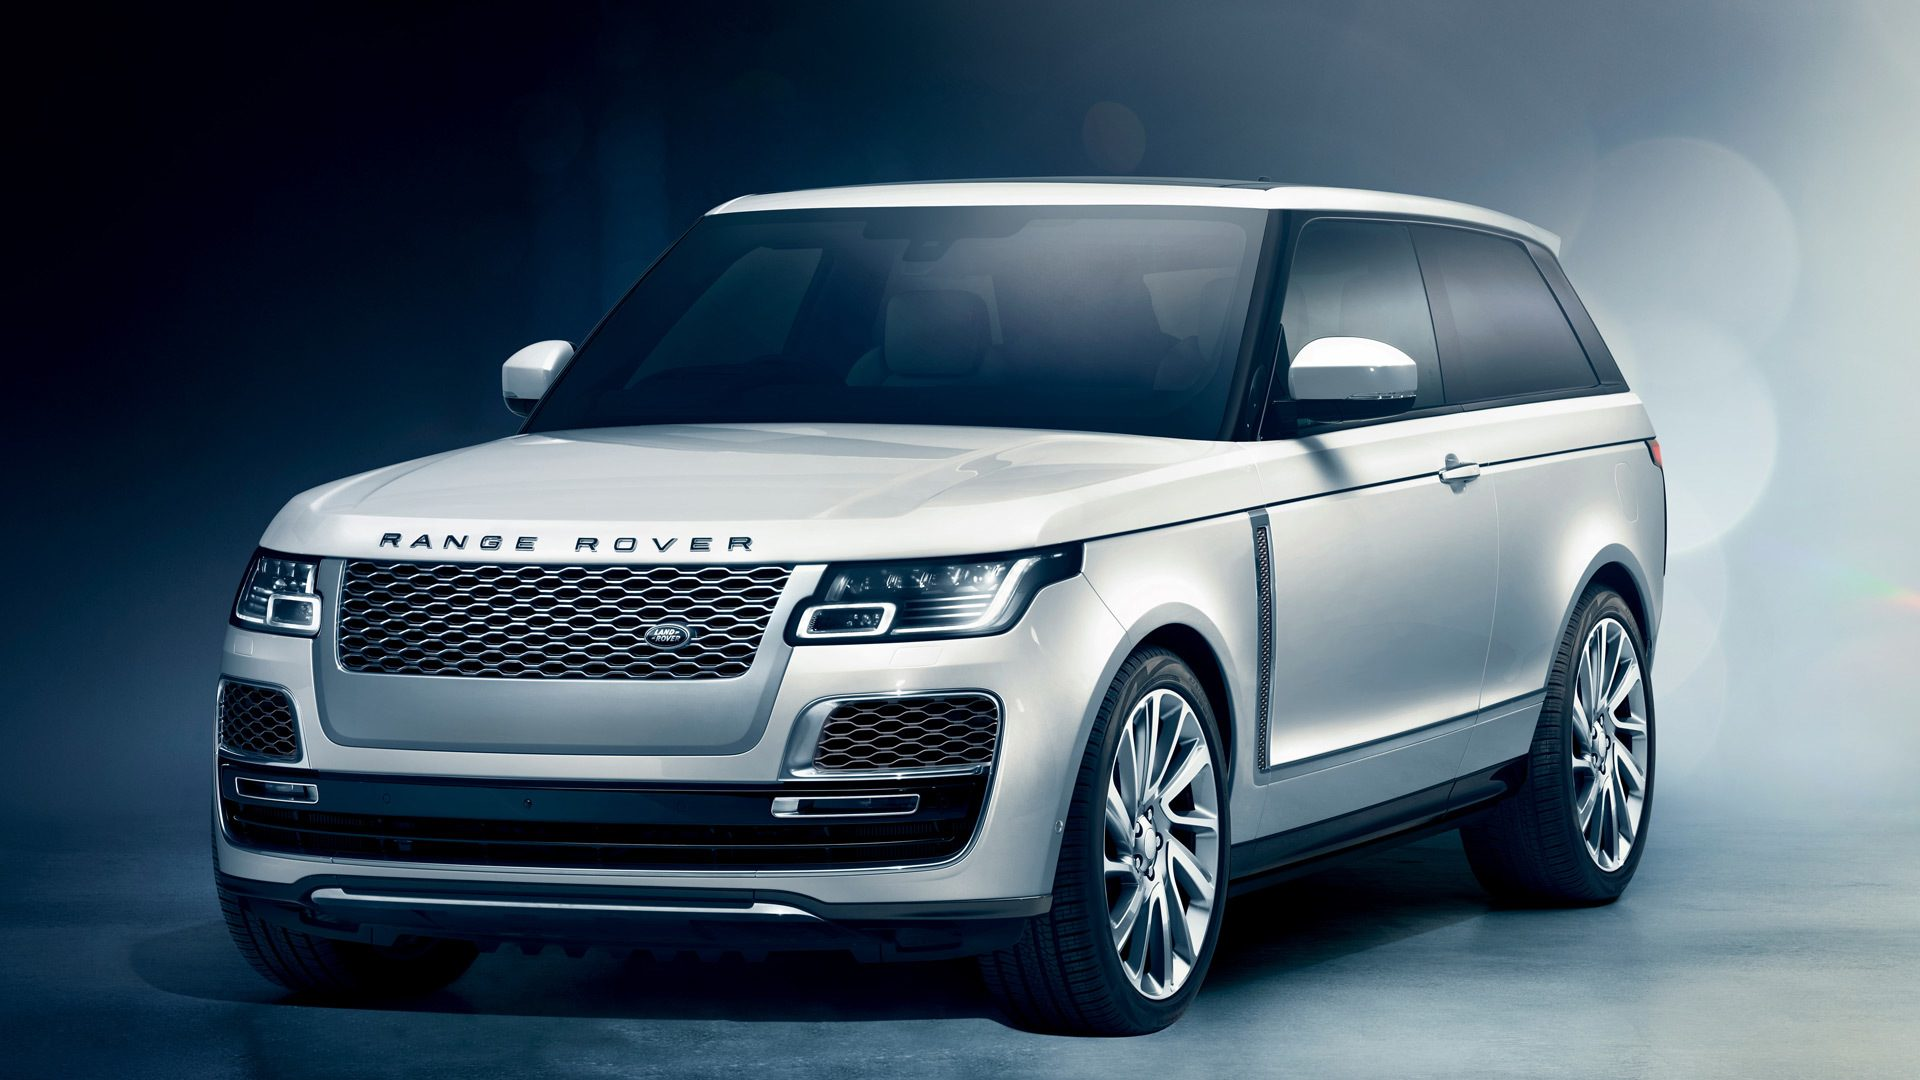 Range Rover SV Coupe Is The World s First Full Size Luxury SUV Coupe